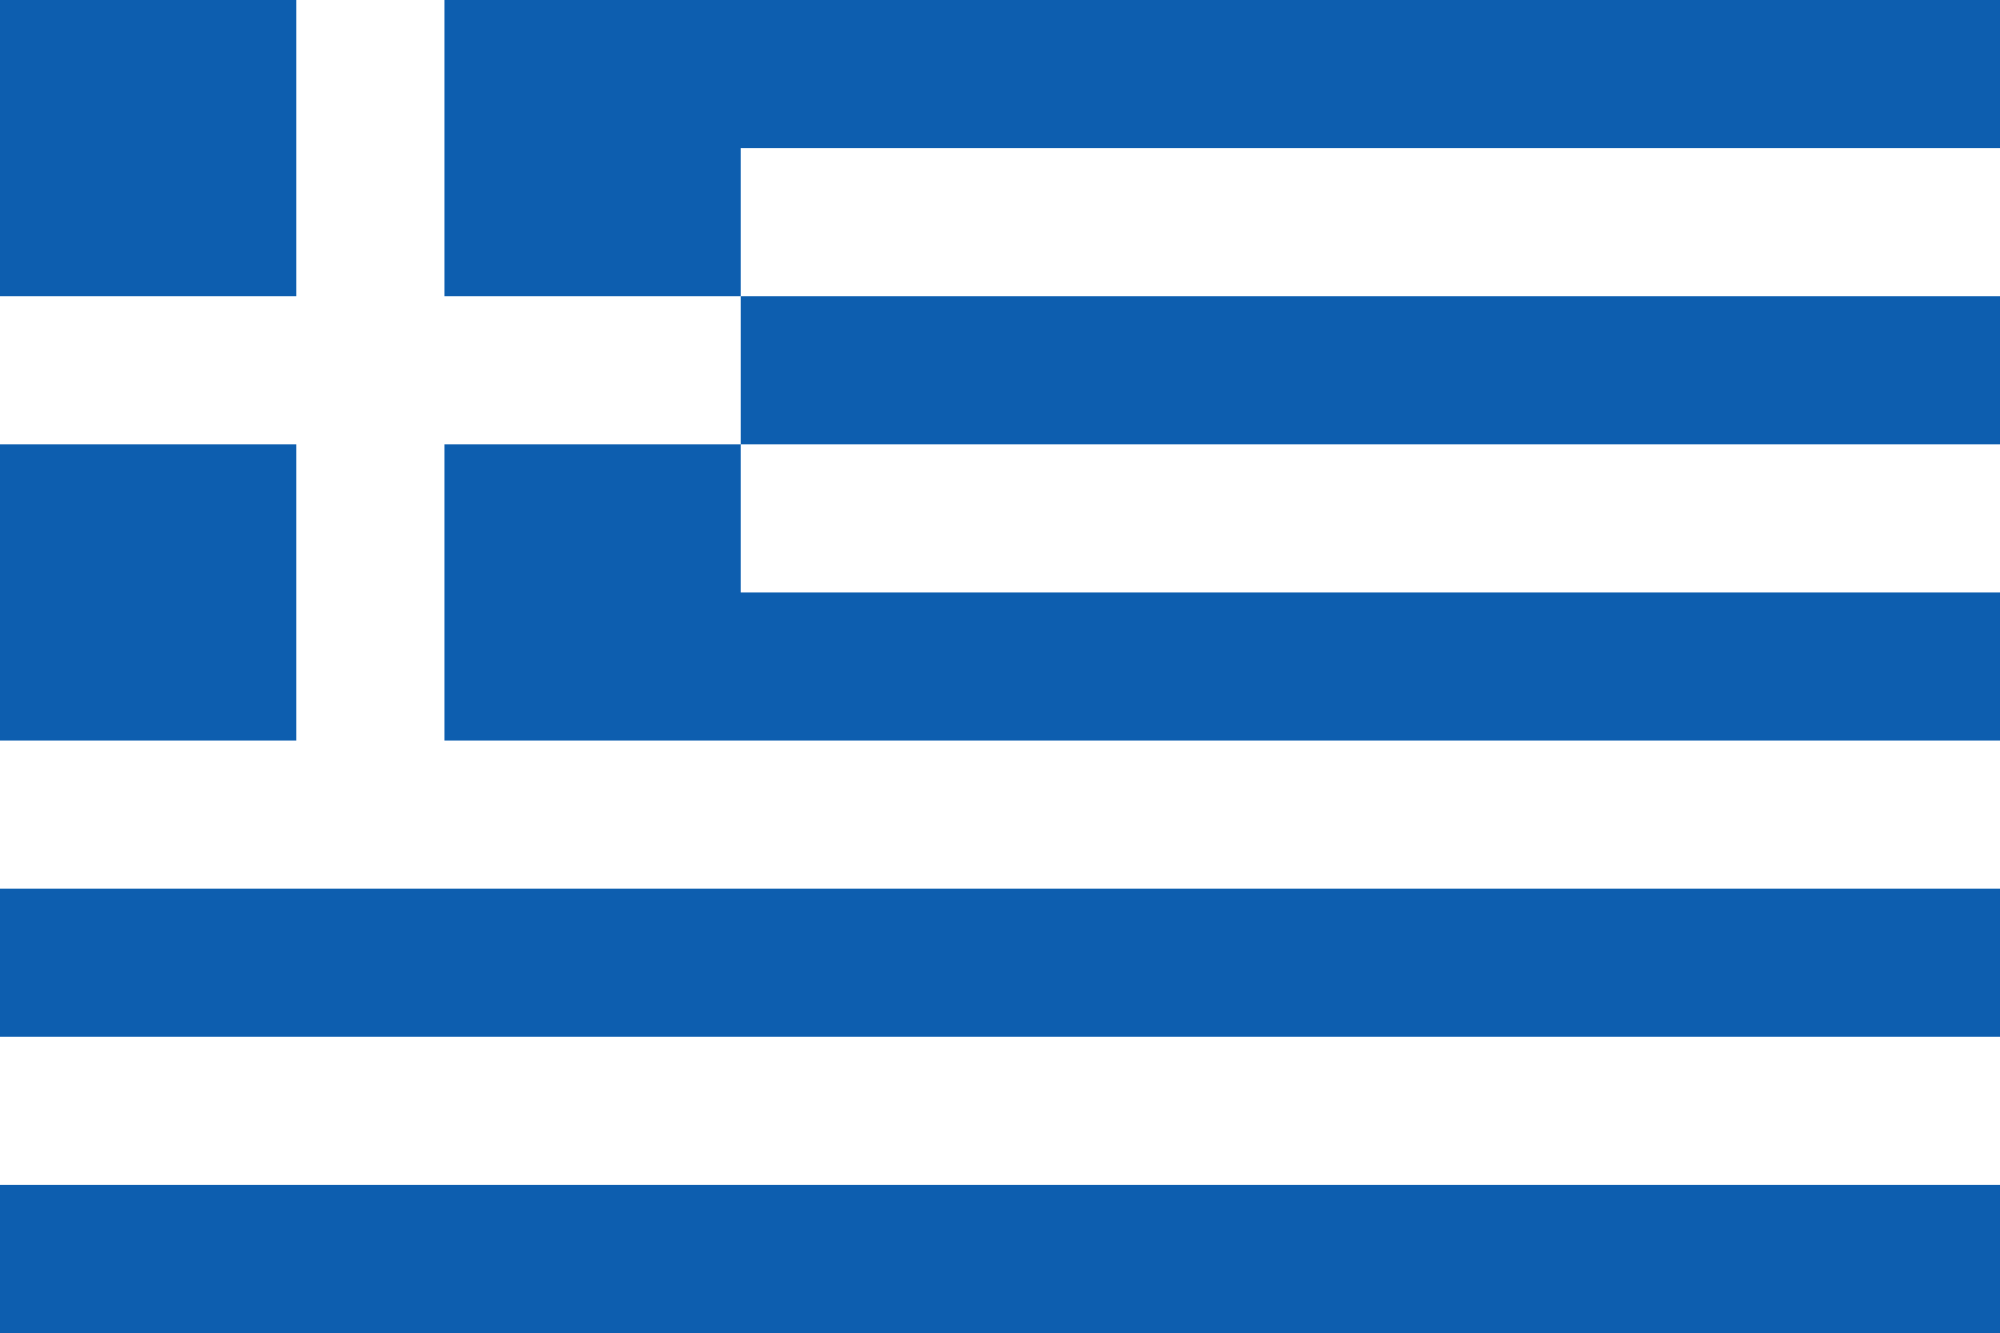 General info about Greece